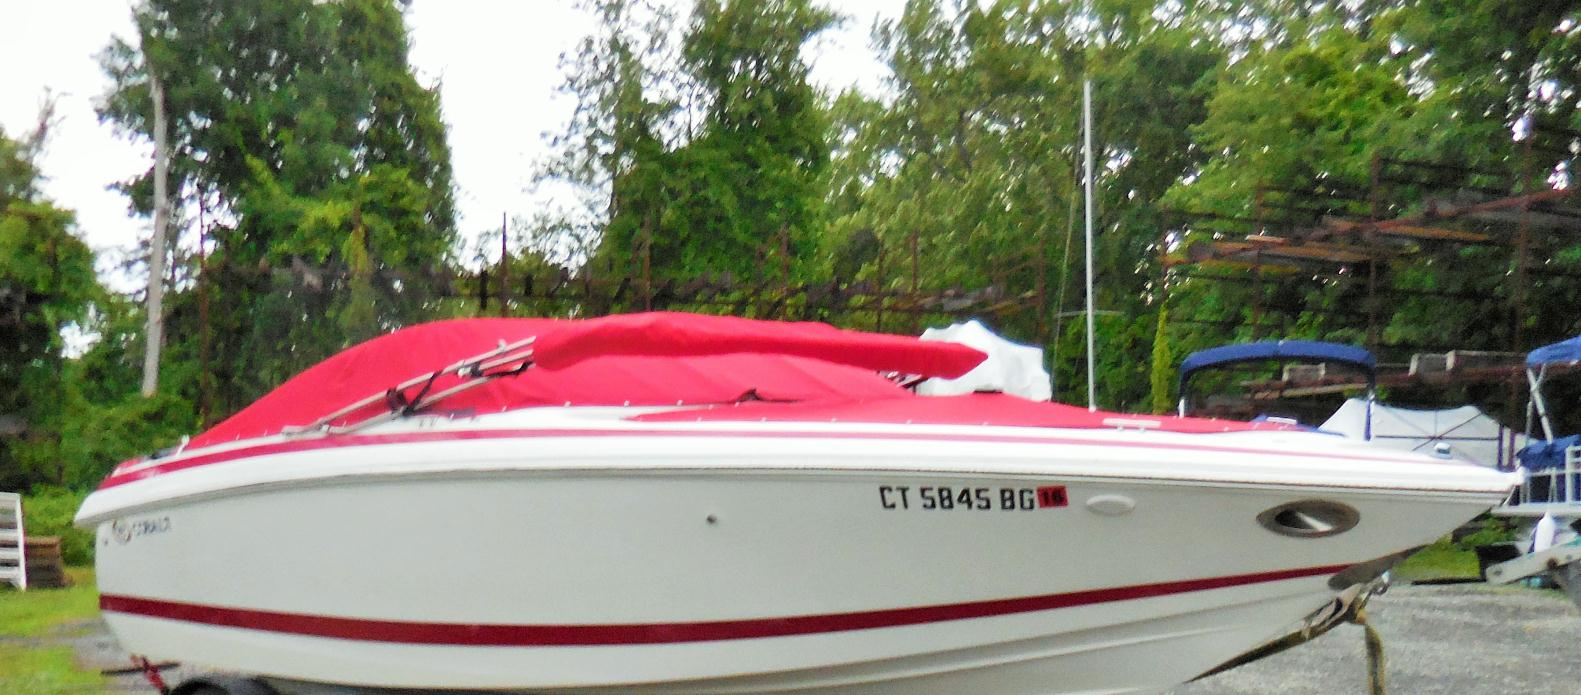 1992 Bowrider For Sale - Boat Parts Here